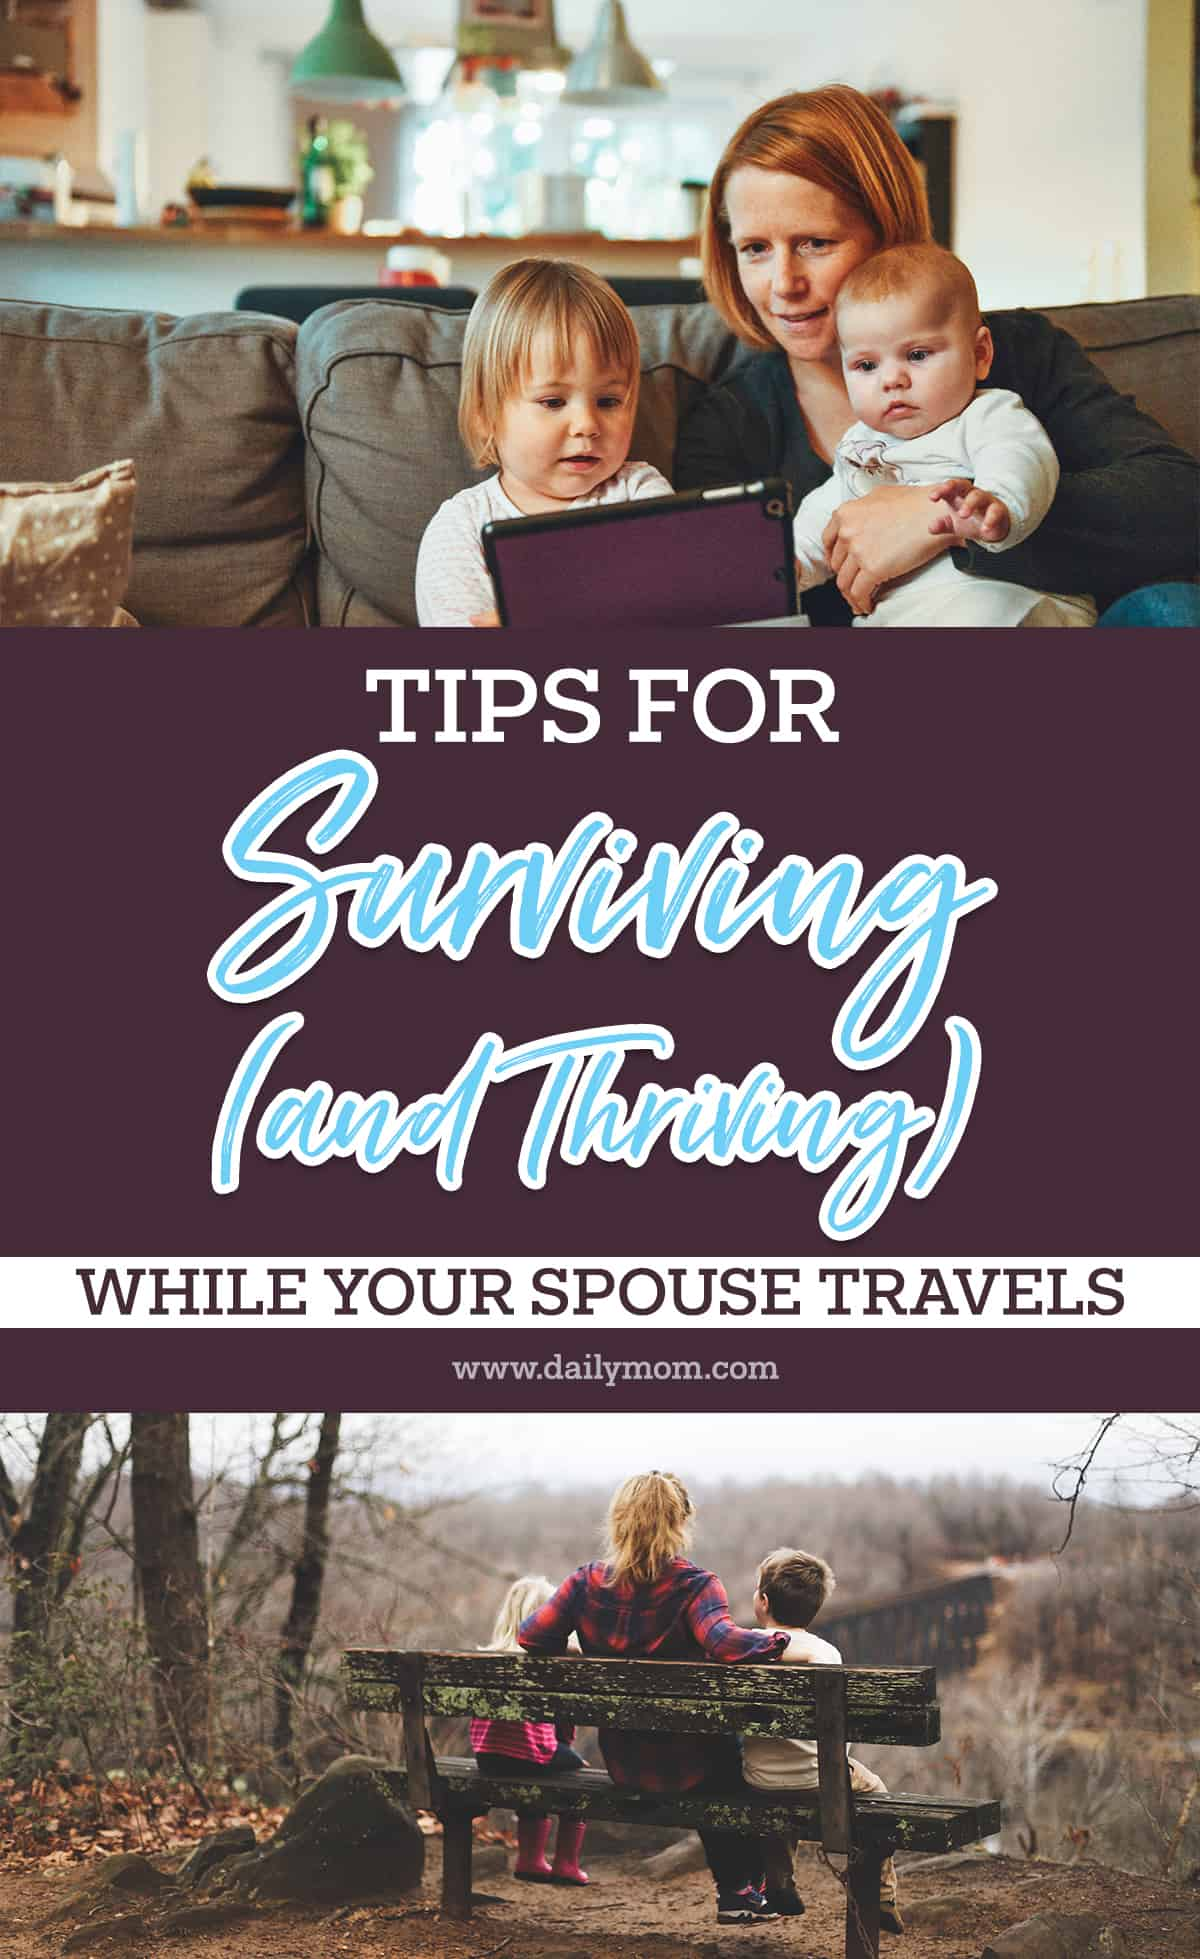 Tips For Surviving (and Thriving) While Your Spouse Travels 5 Daily Mom Parents Portal